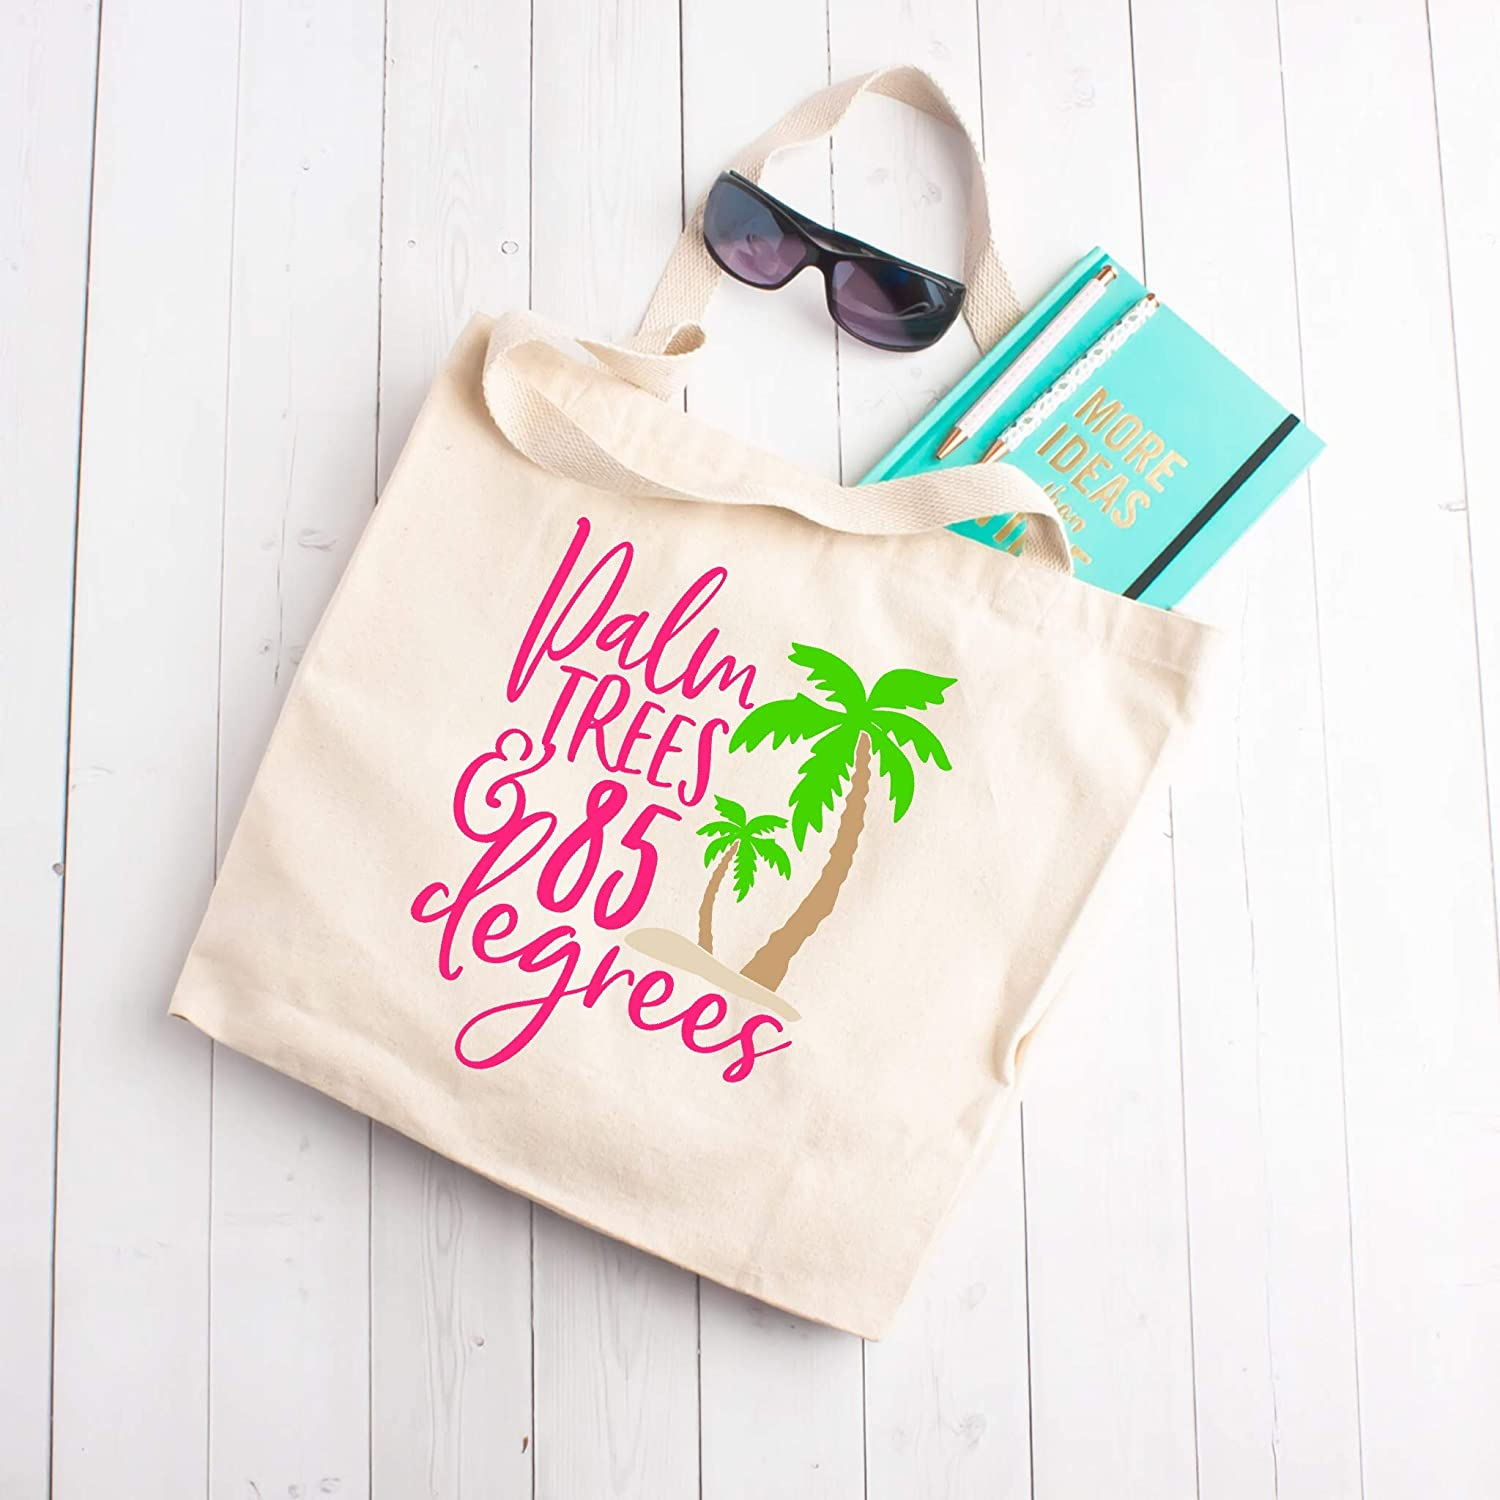 Palm Trees Free shipping on posting reviews 85 degrees Purchase Tote Beach Bag